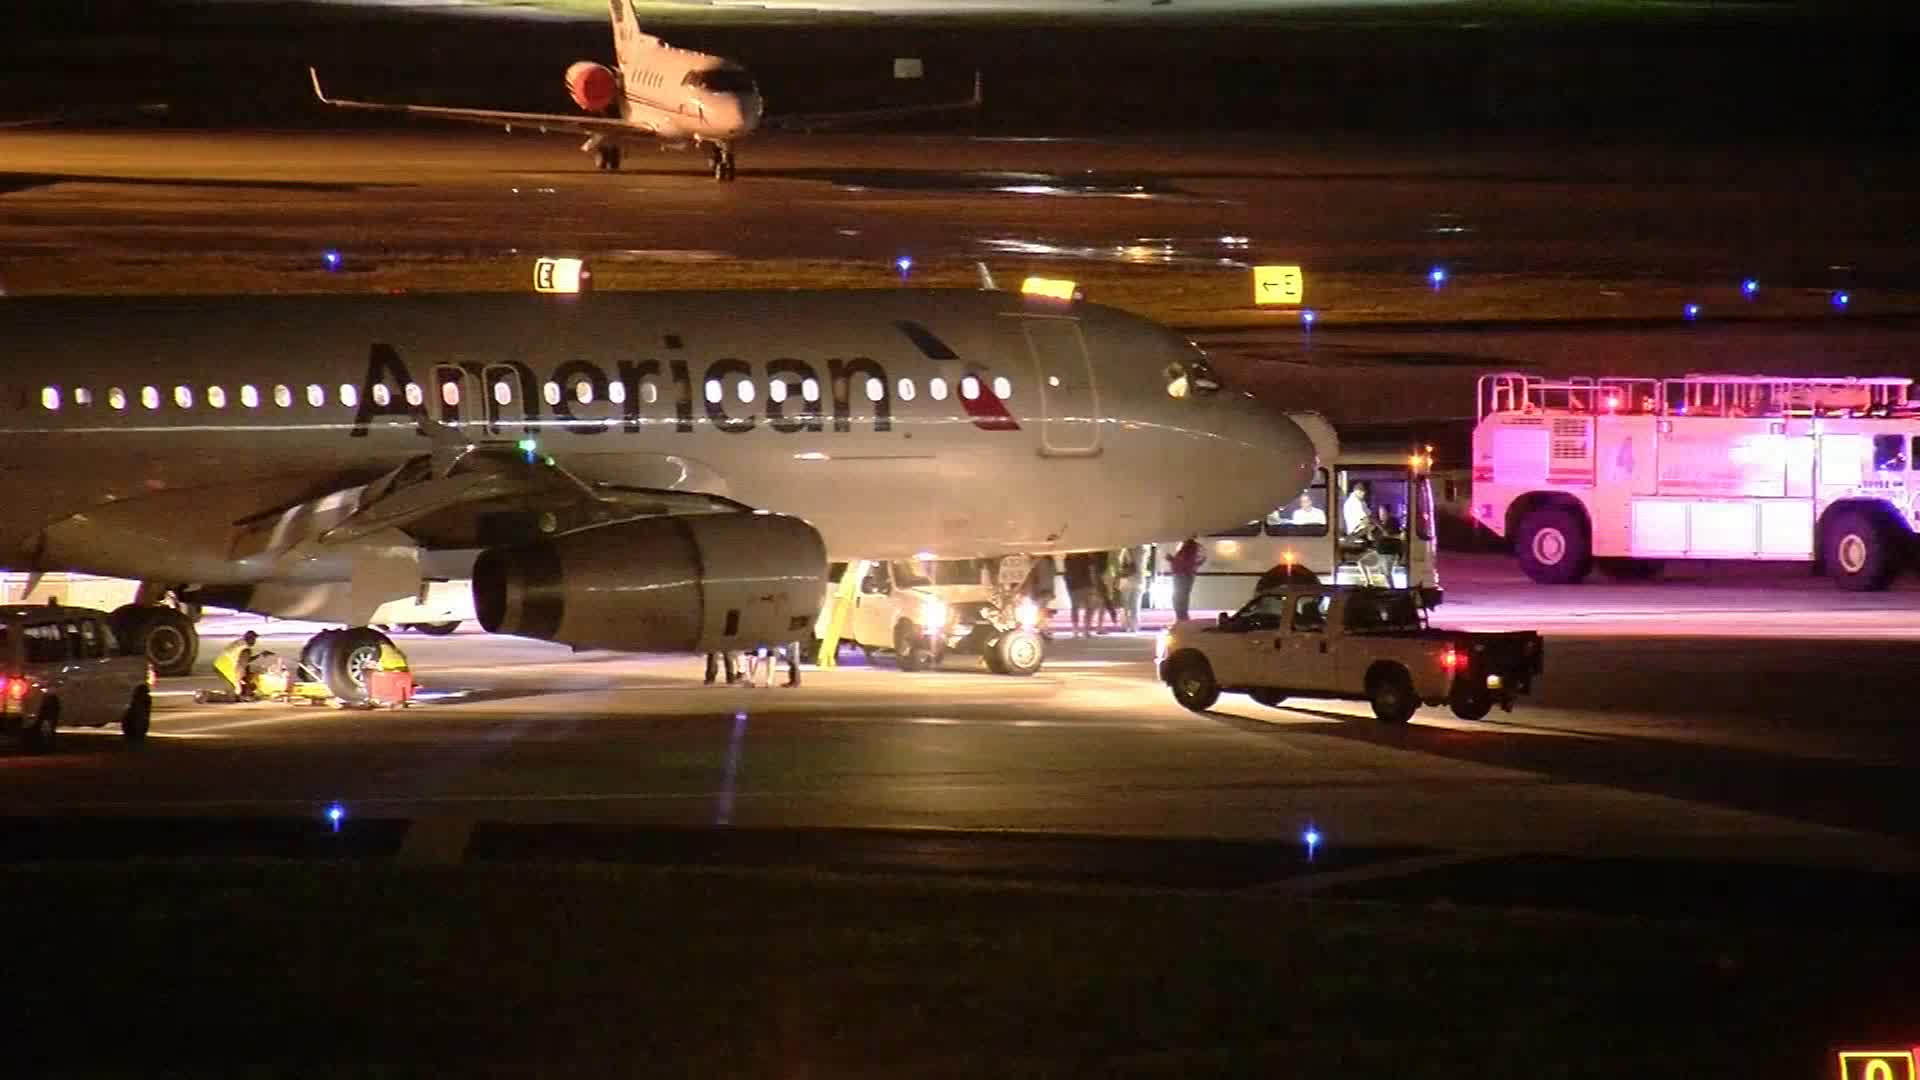 American Airlines flight 574 traveling from Phoenix, Arizona to Tampa, Florida was forced to make an emergency landing after a warning light came on in the cockpit Monday night. (Published Sept. 20, 2016)